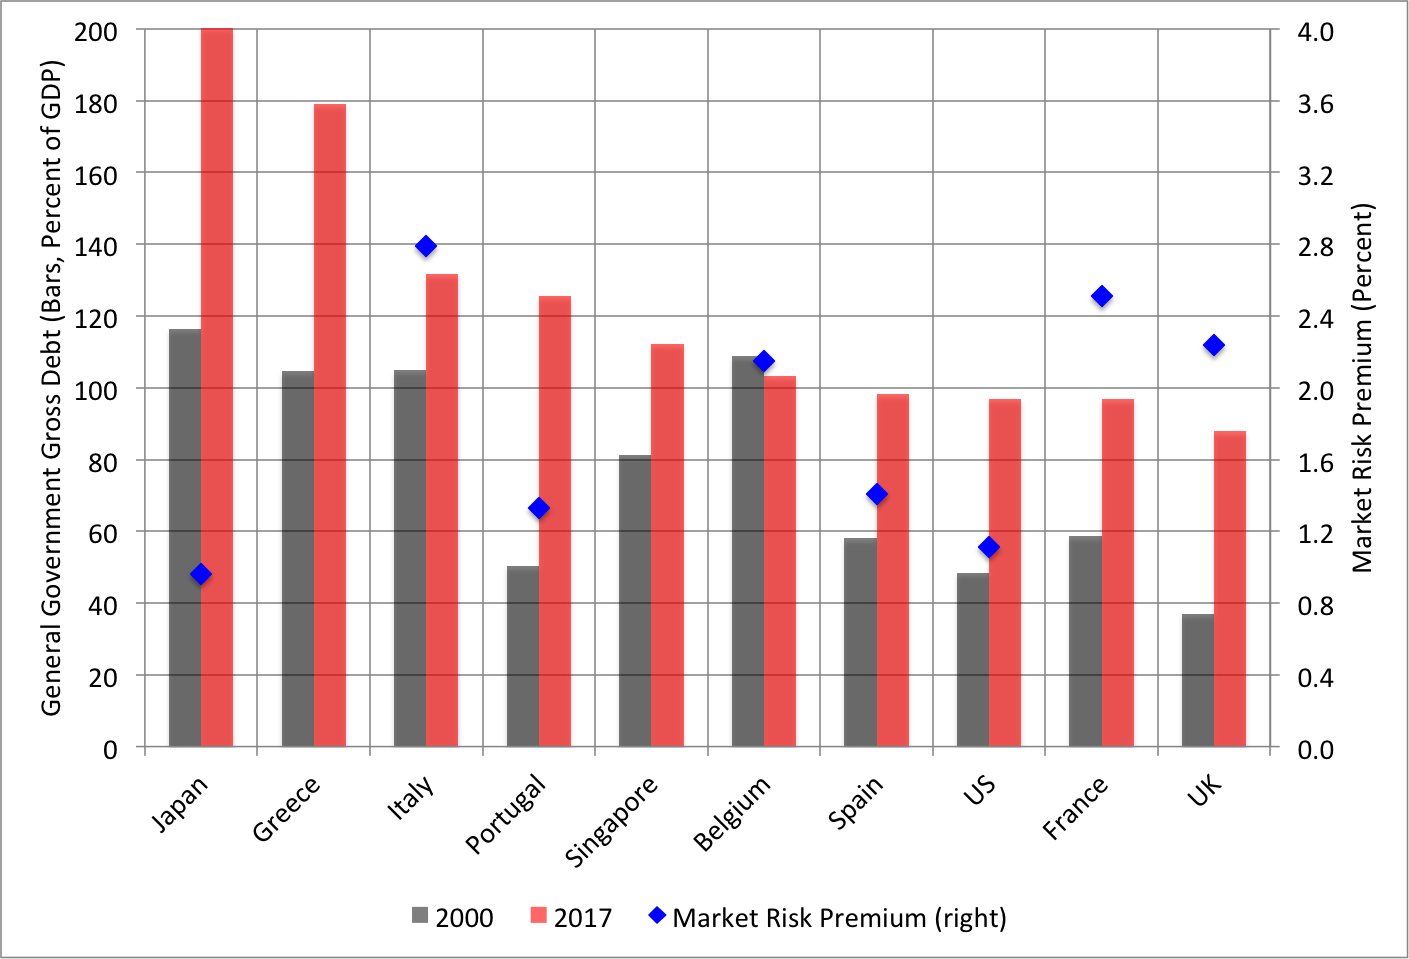 Note: The bars show BIS-reporting countries ranked by their 2017 debt ratios (left scale). The market risk premia (blue diamonds, right scale) are the average gap between the safe rate of return on government debt and the economic growth rate between 1980 and 2015. Sources: BIS  credit to the government sector  (nominal value) for government debt and  Jordà et al  (Tables 11 and 12) for the components of the market risk premia.